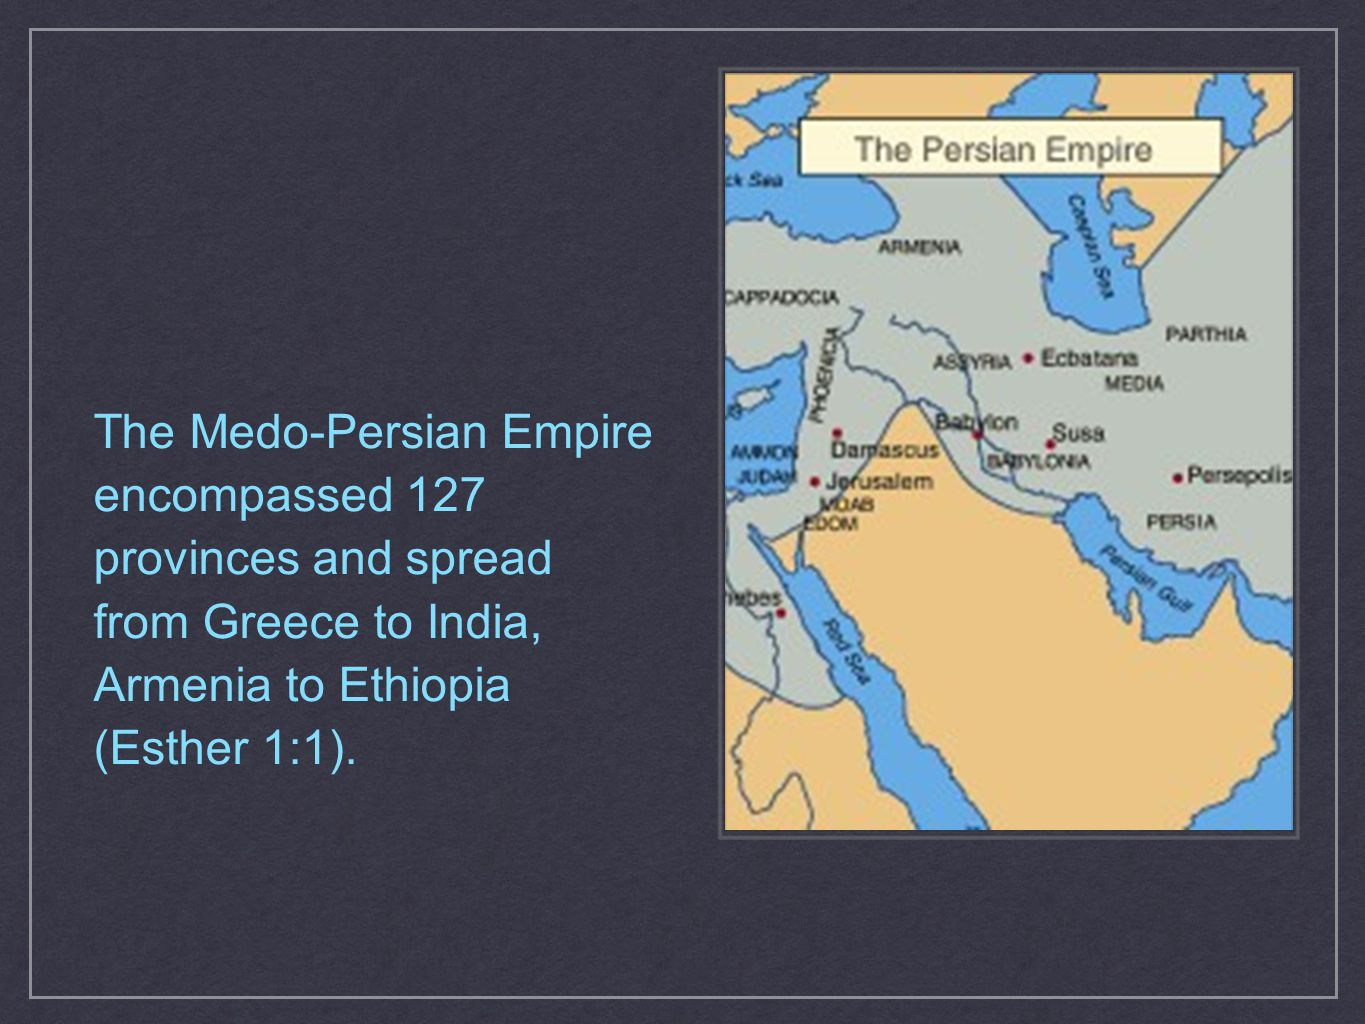 The Medo-Persian Empire encompassed 127 provinces and spread from Greece to India, Armenia to Ethiopia (Esther 1:1).